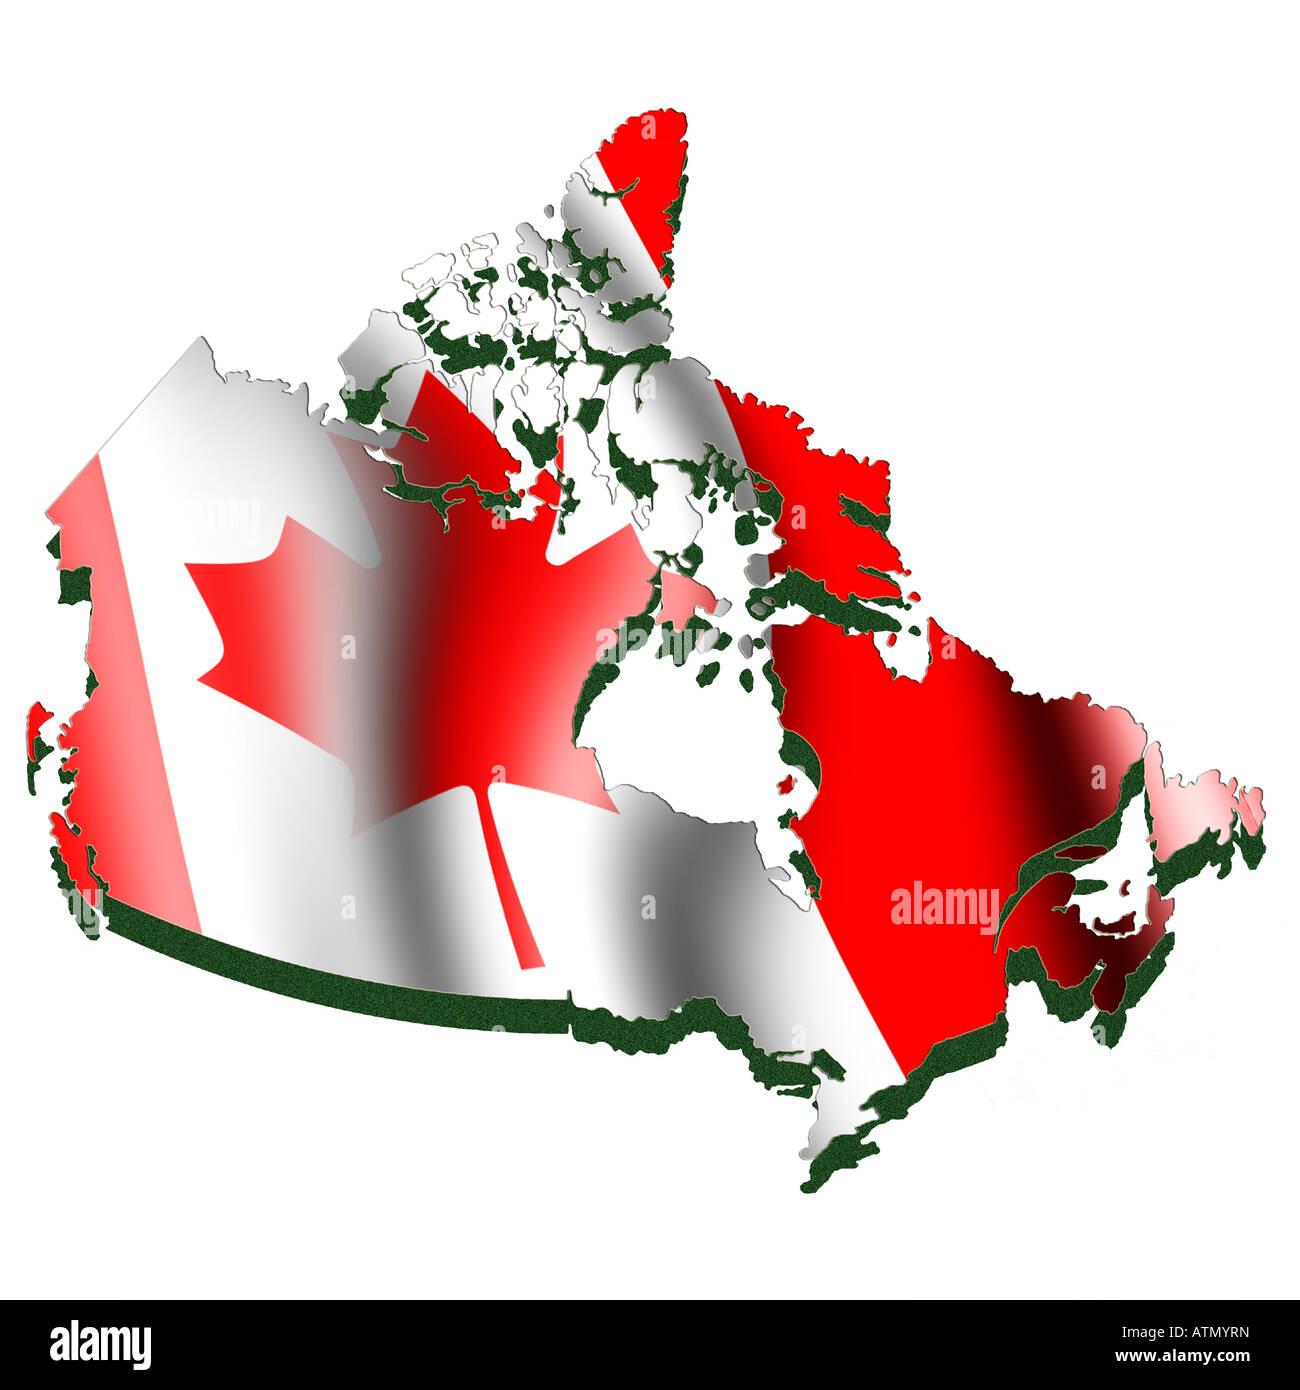 Canada Map Flag.Outline Map And Flag Of Canada Stock Photo 16354184 Alamy